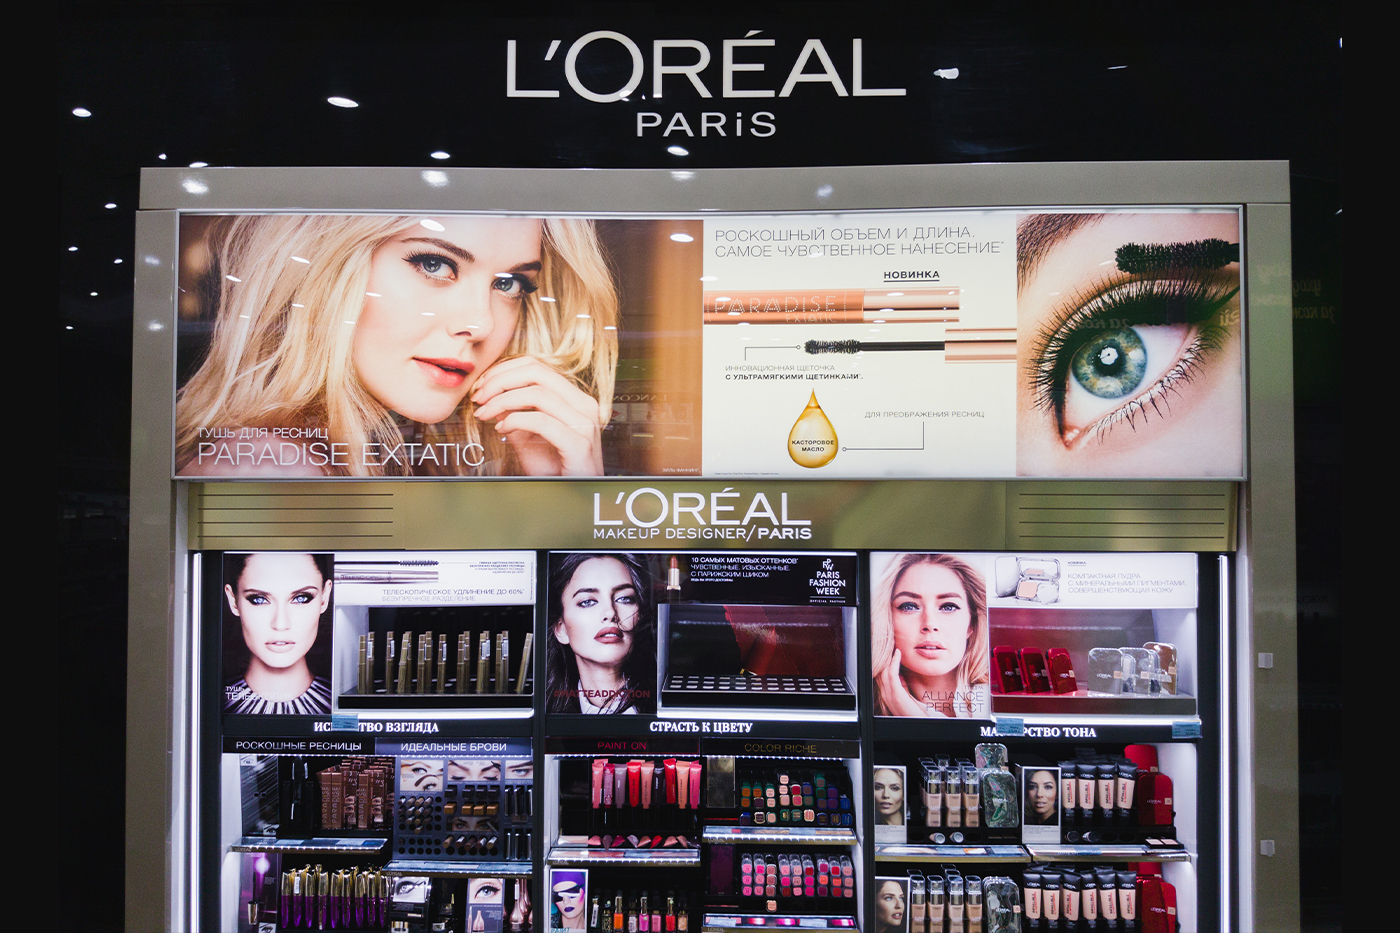 Beauty giants witness rise in the global brand value despite COVID